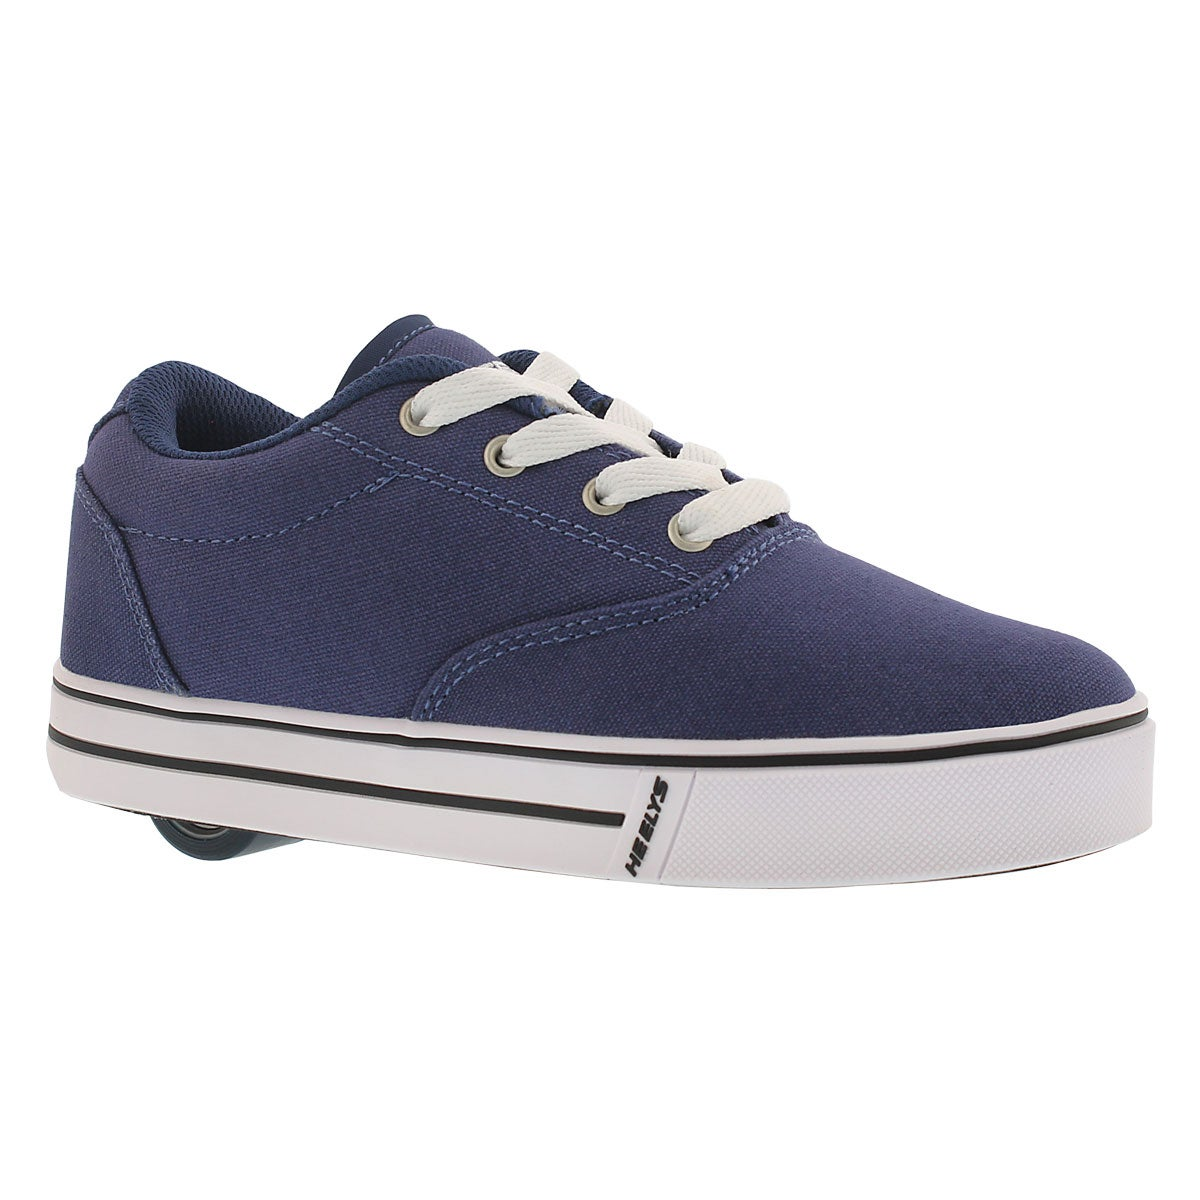 Boys' LAUNCH navy skate sneakers